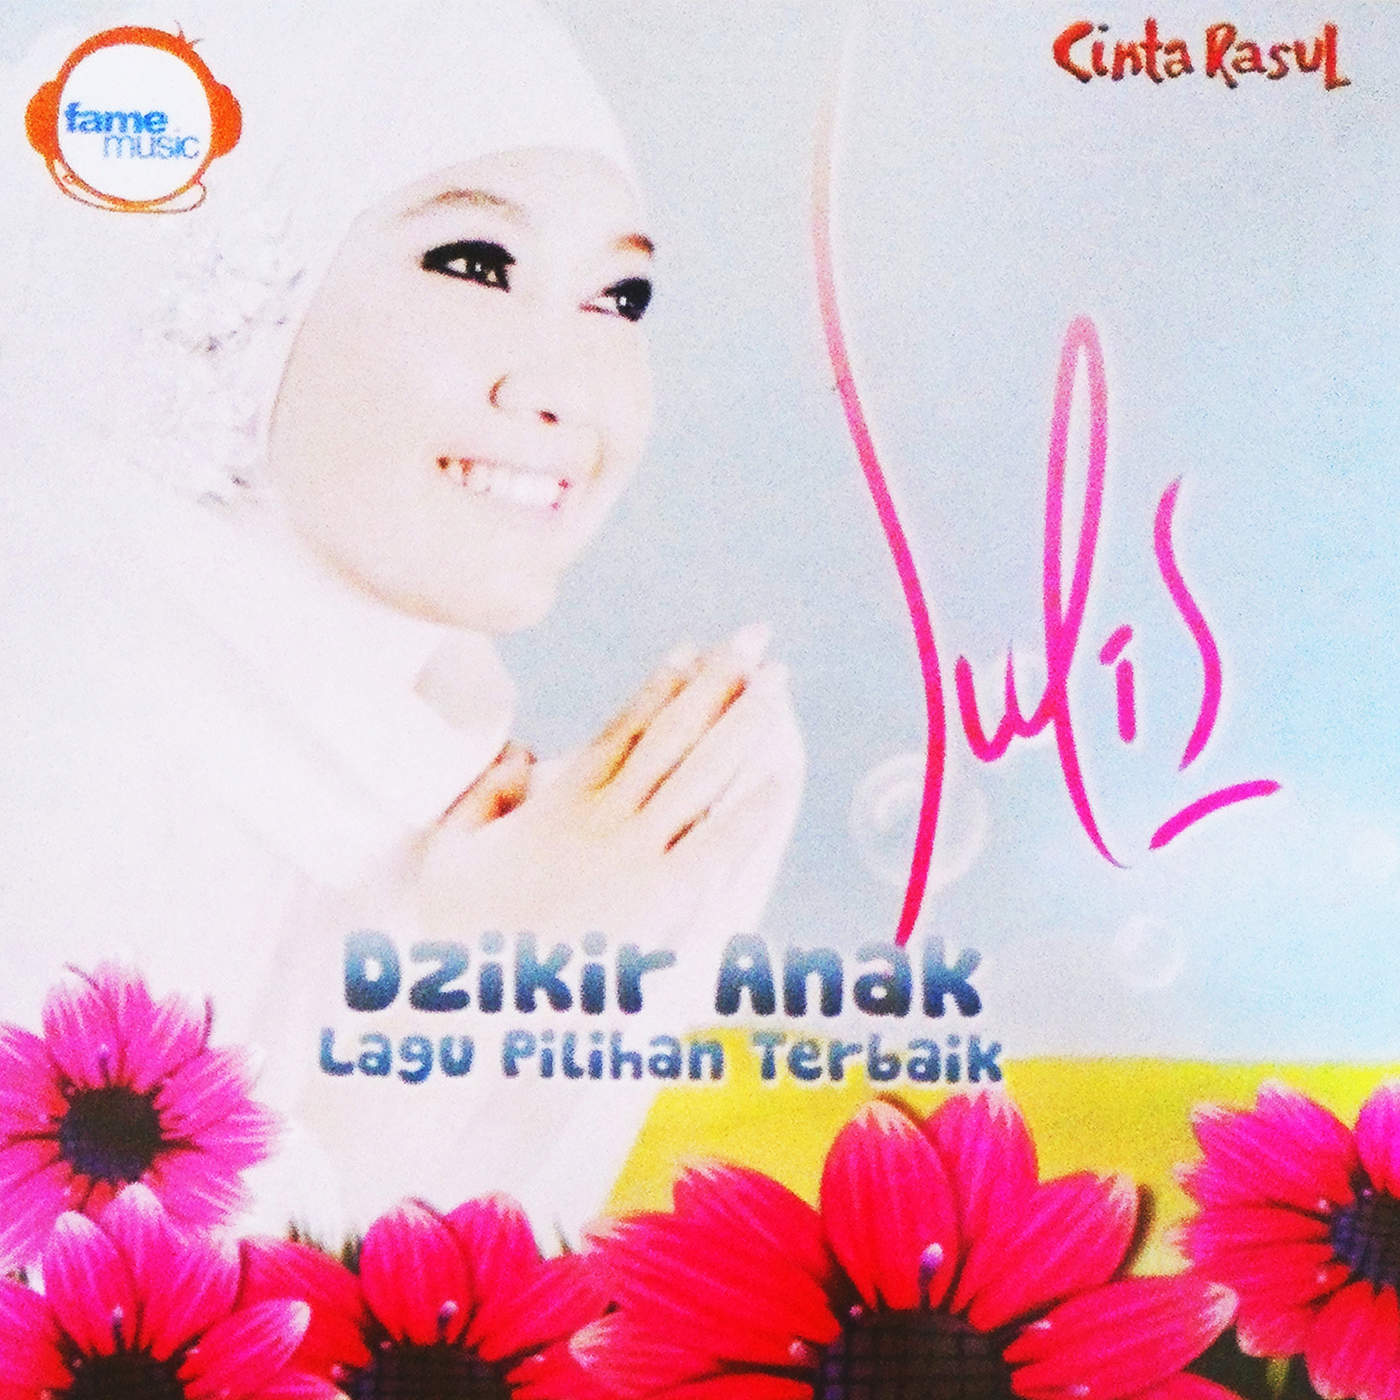 Various Artists - Lagu Daerah Anak-Anak Nusantara - Album (2008) [iTunes Plus AAC M4A]